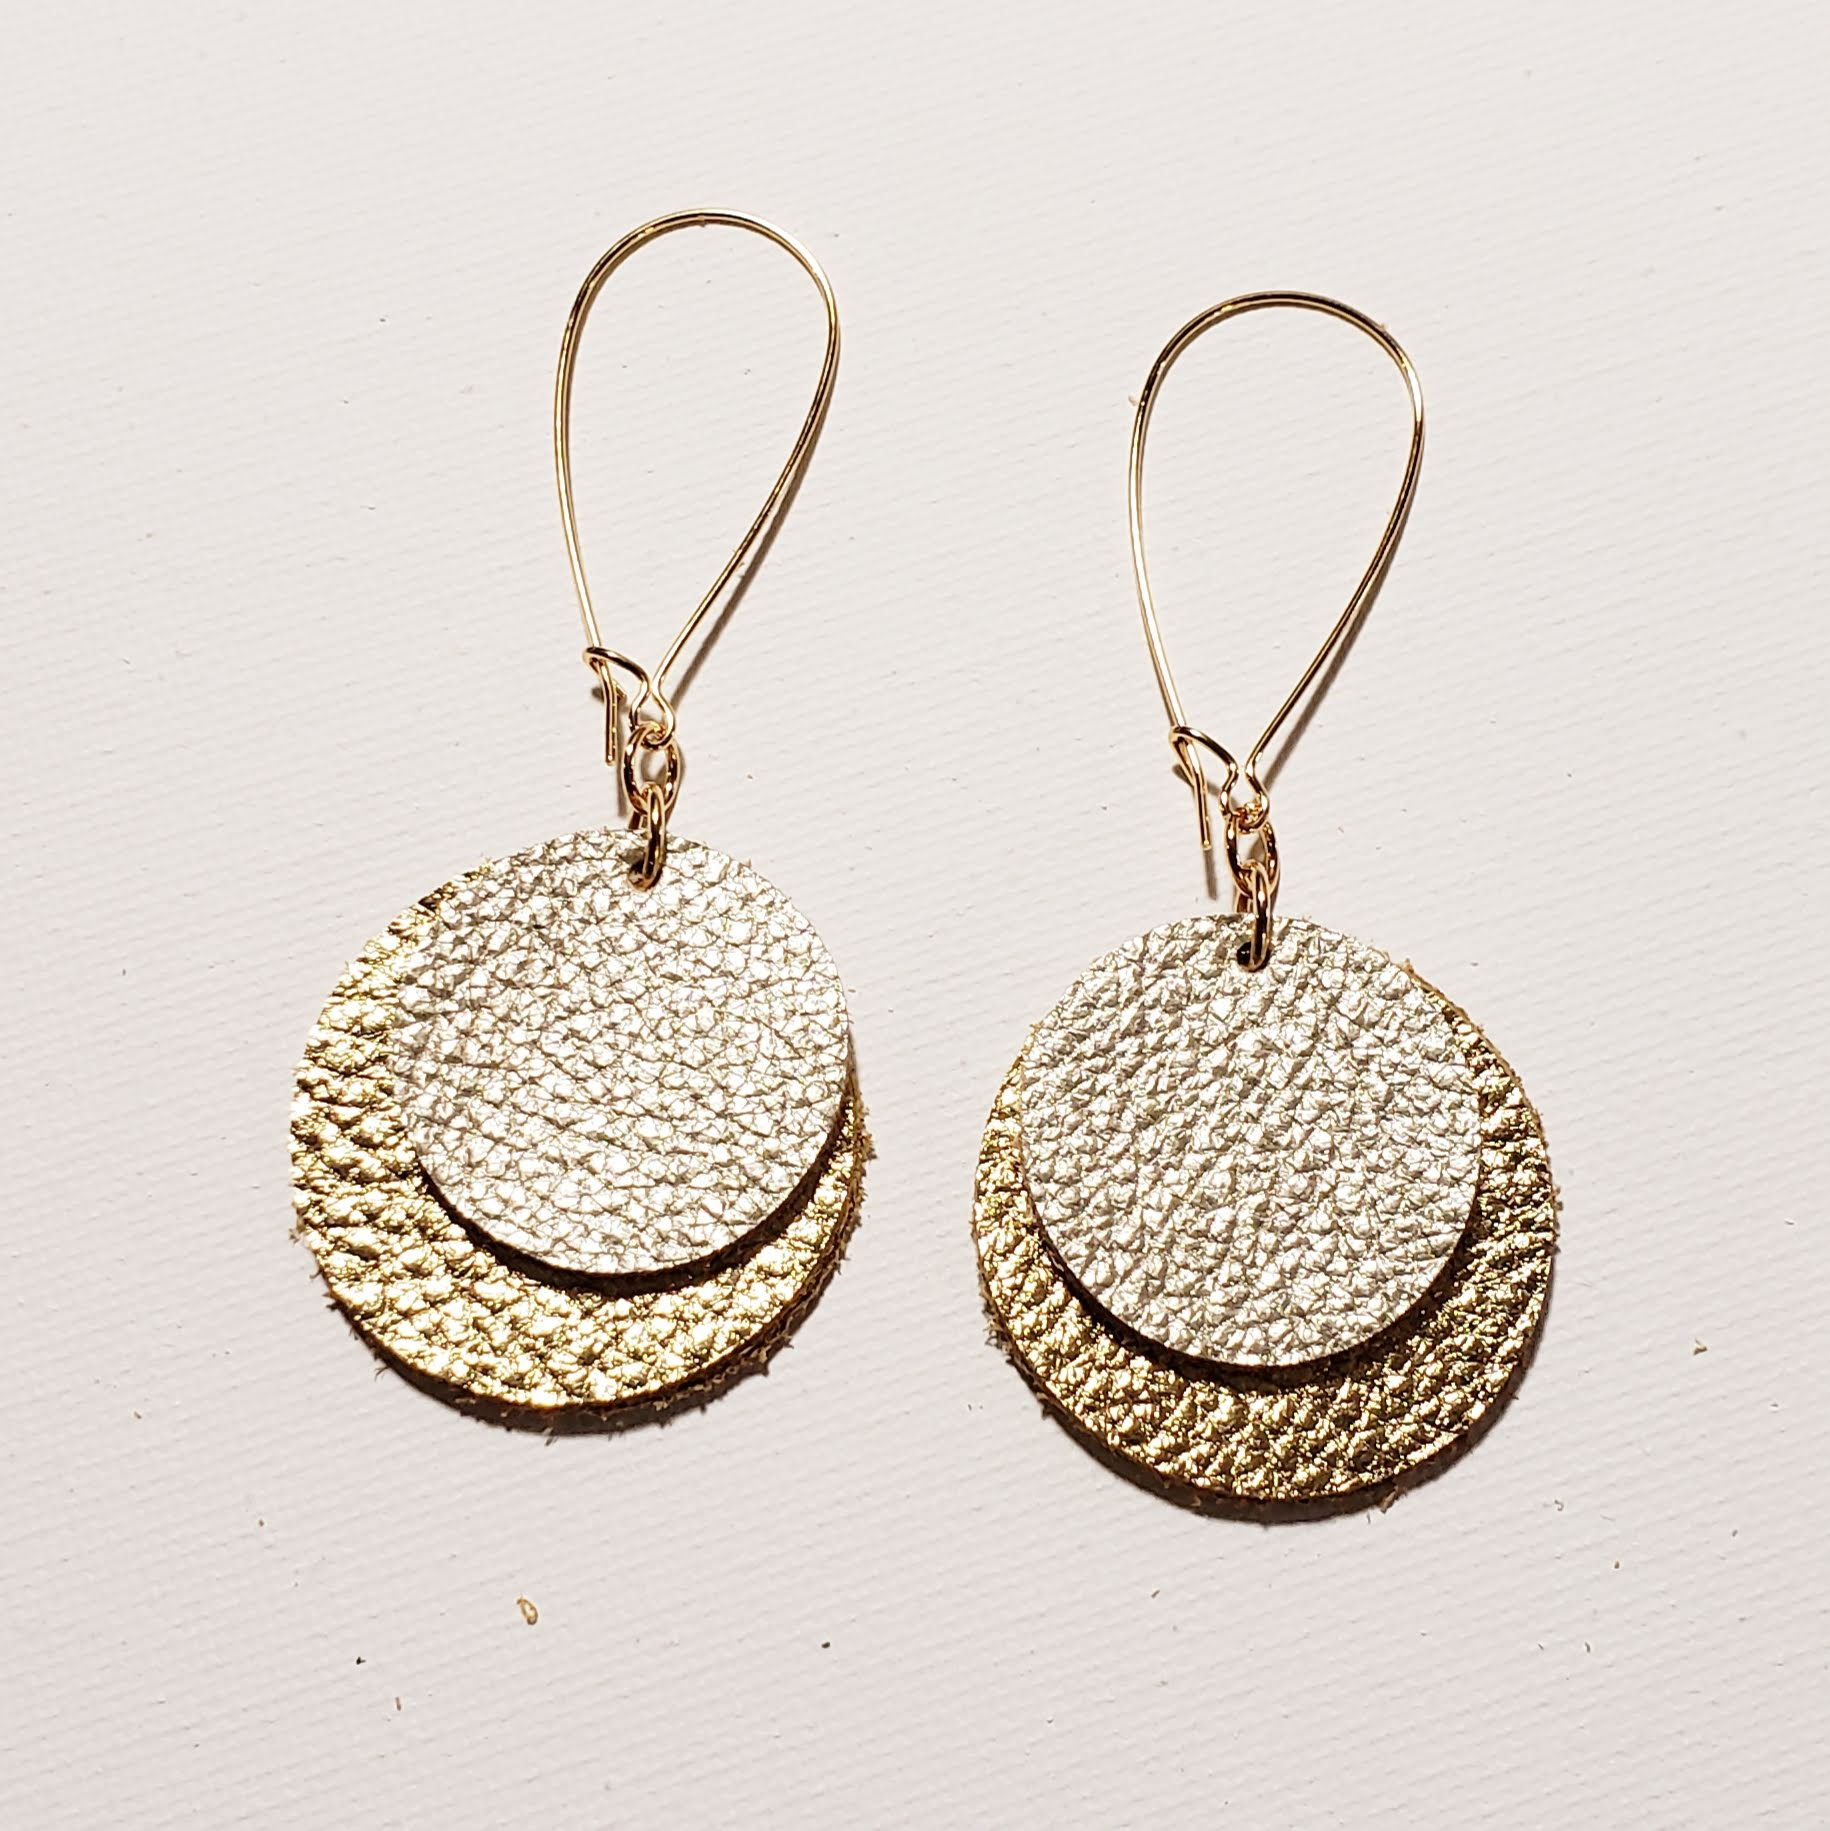 Meghan Markle Earrings / Gold Earrings / Leather Earrings / Drop Earrings / Disc Earrings / Duchess